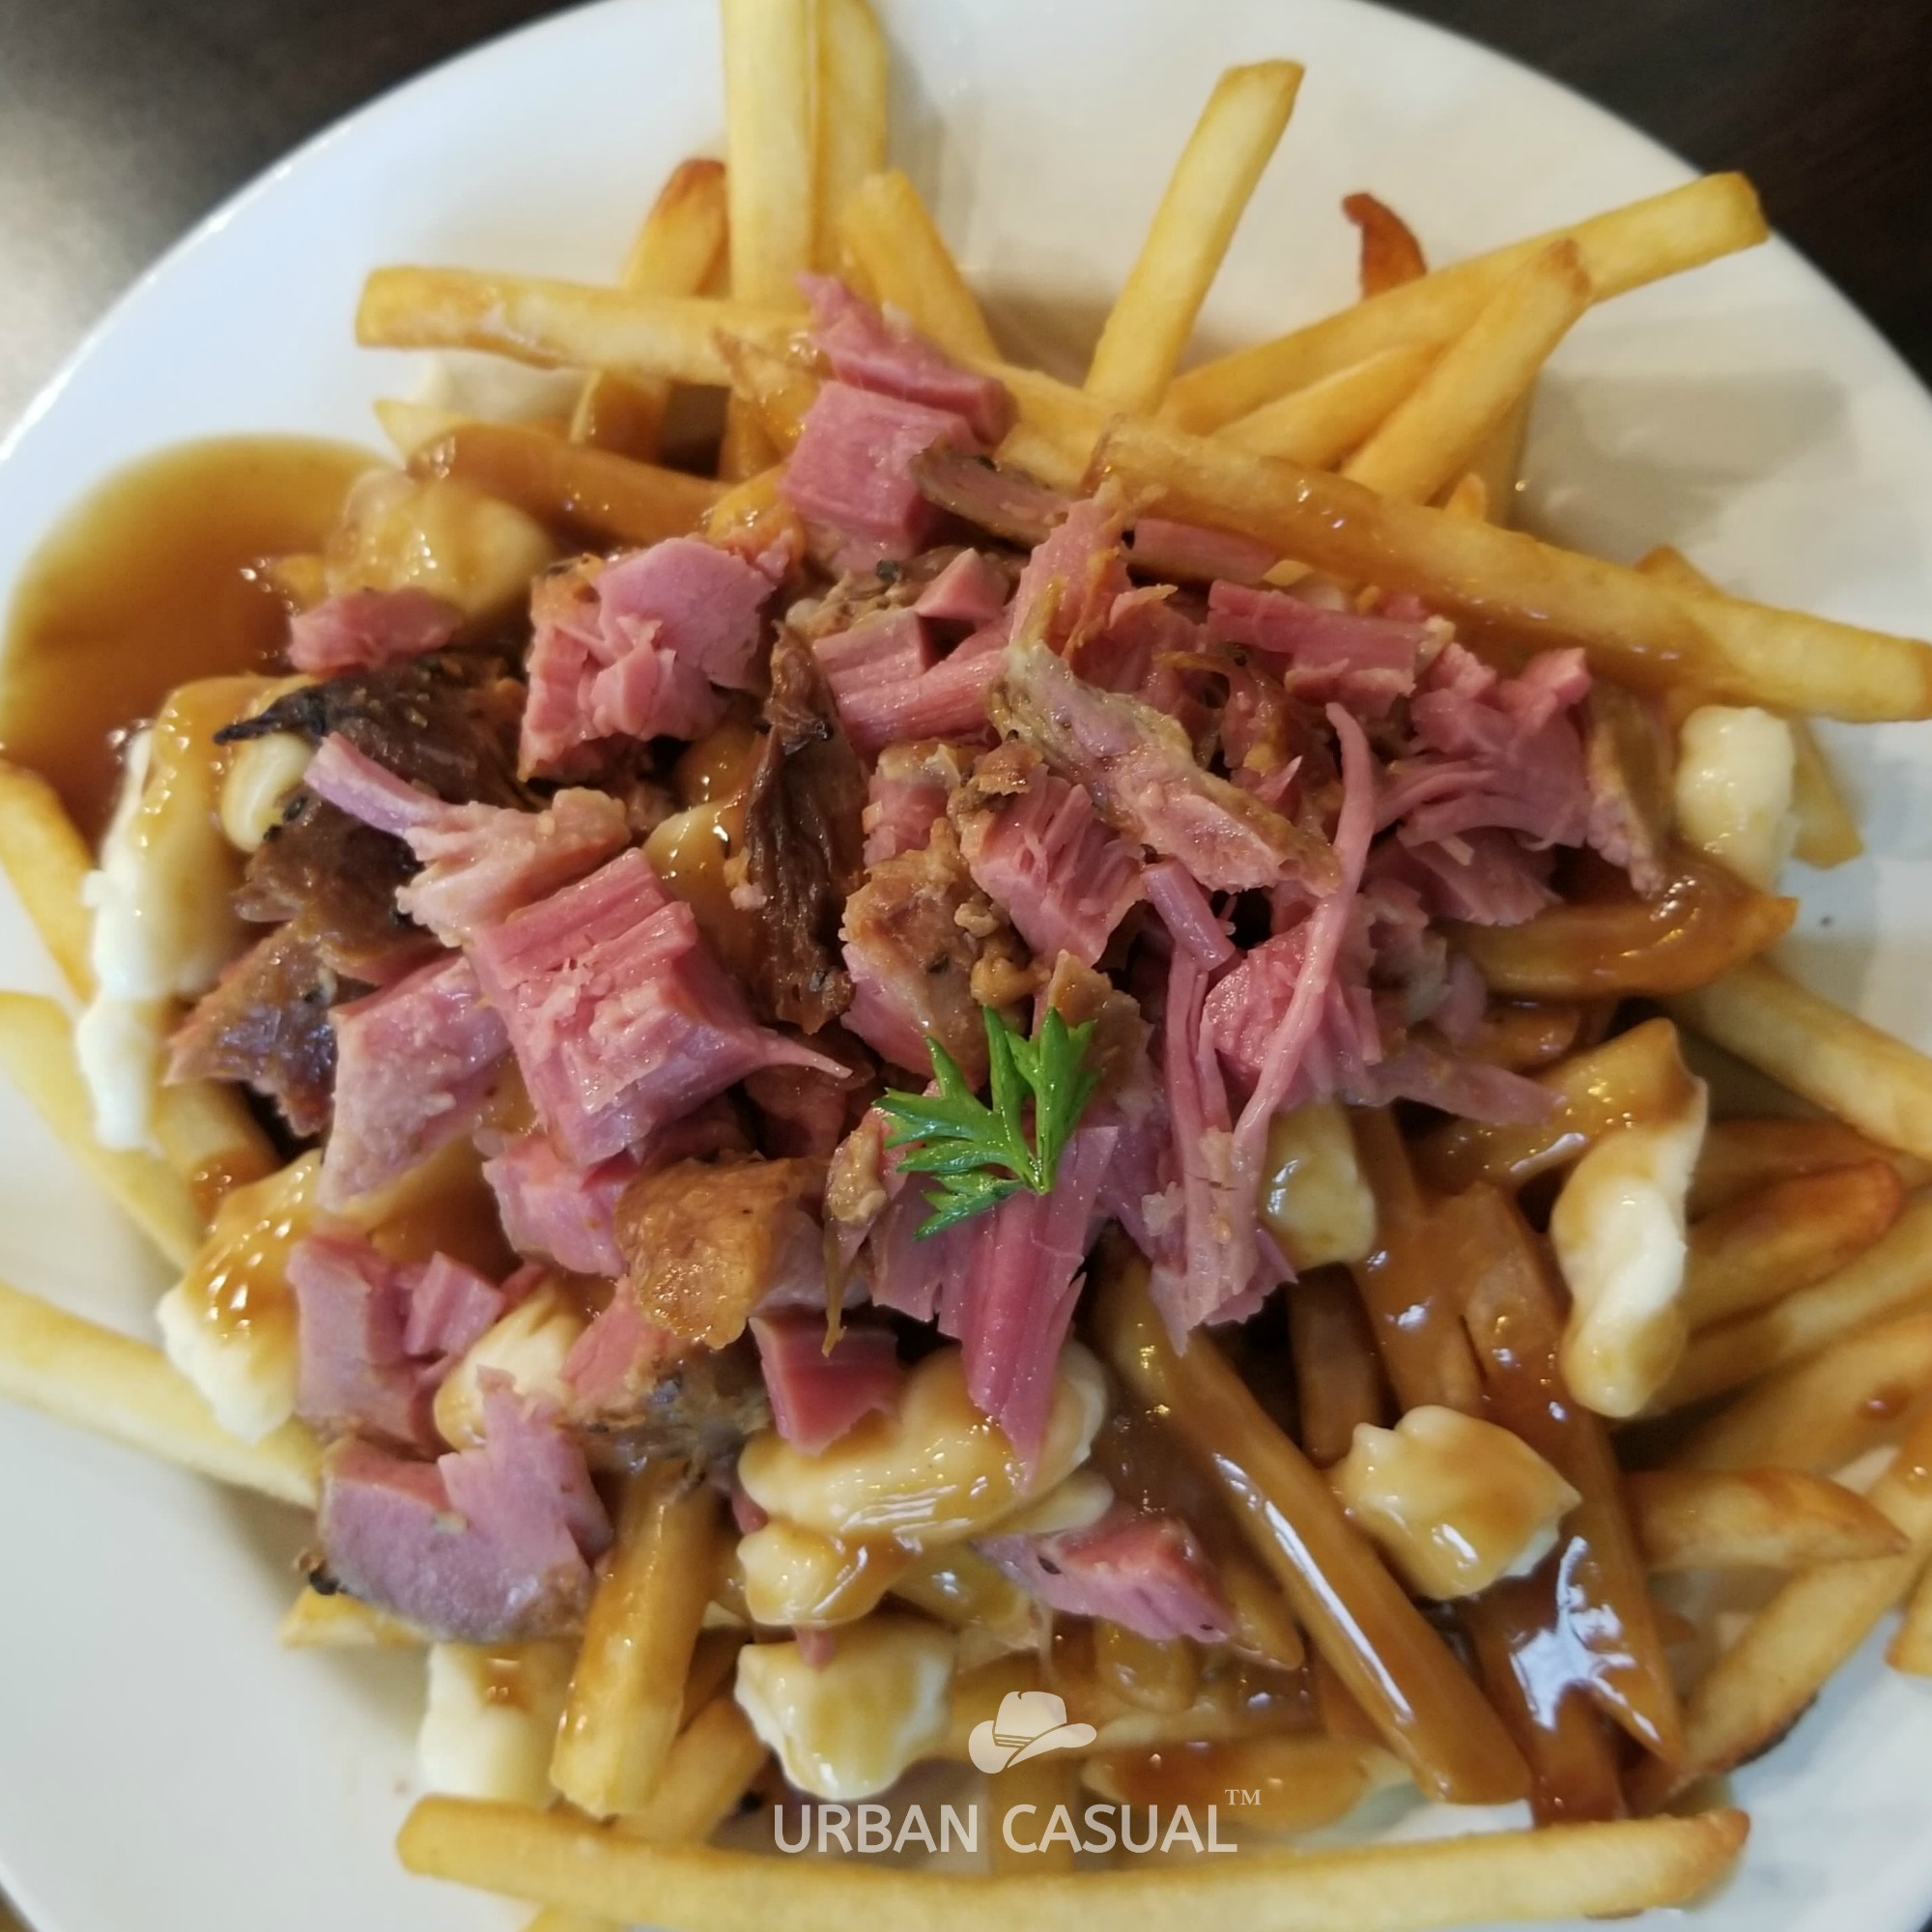 Presenting: the Rancher's Classic Poutine